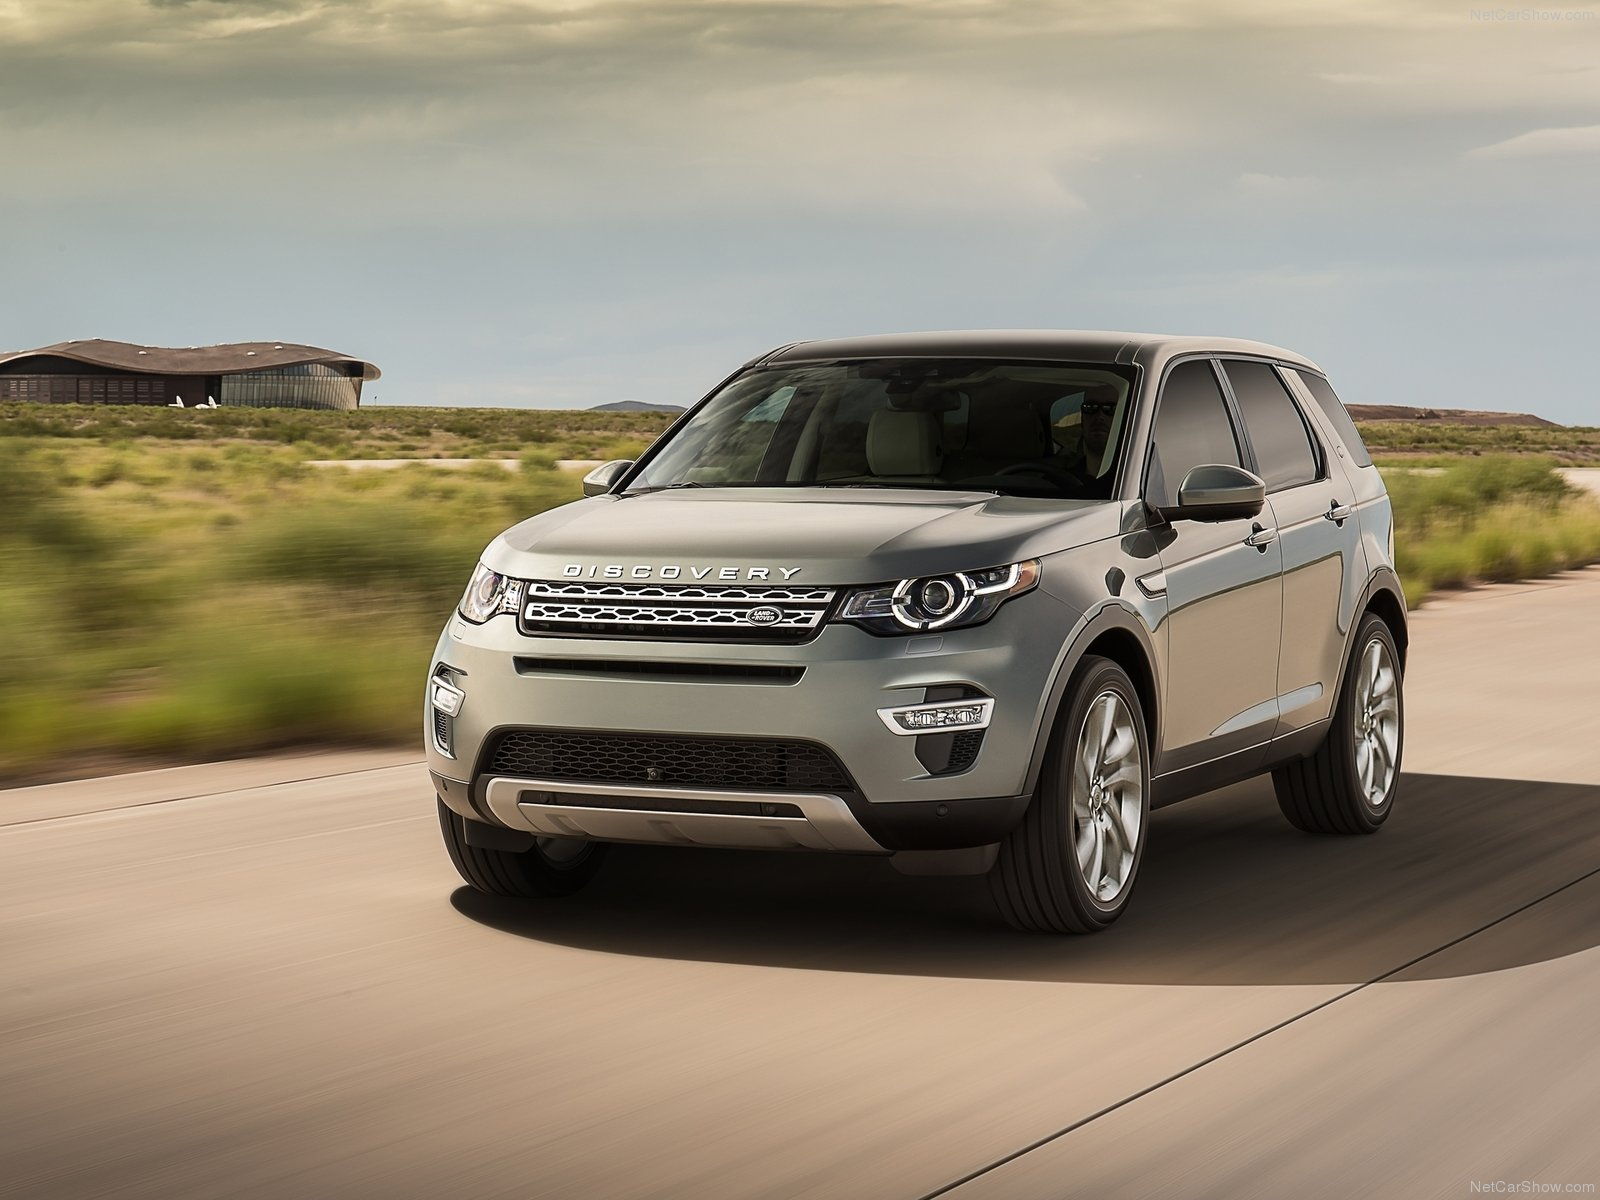 Land Rover Discovery Sport photos Gallery Page 4